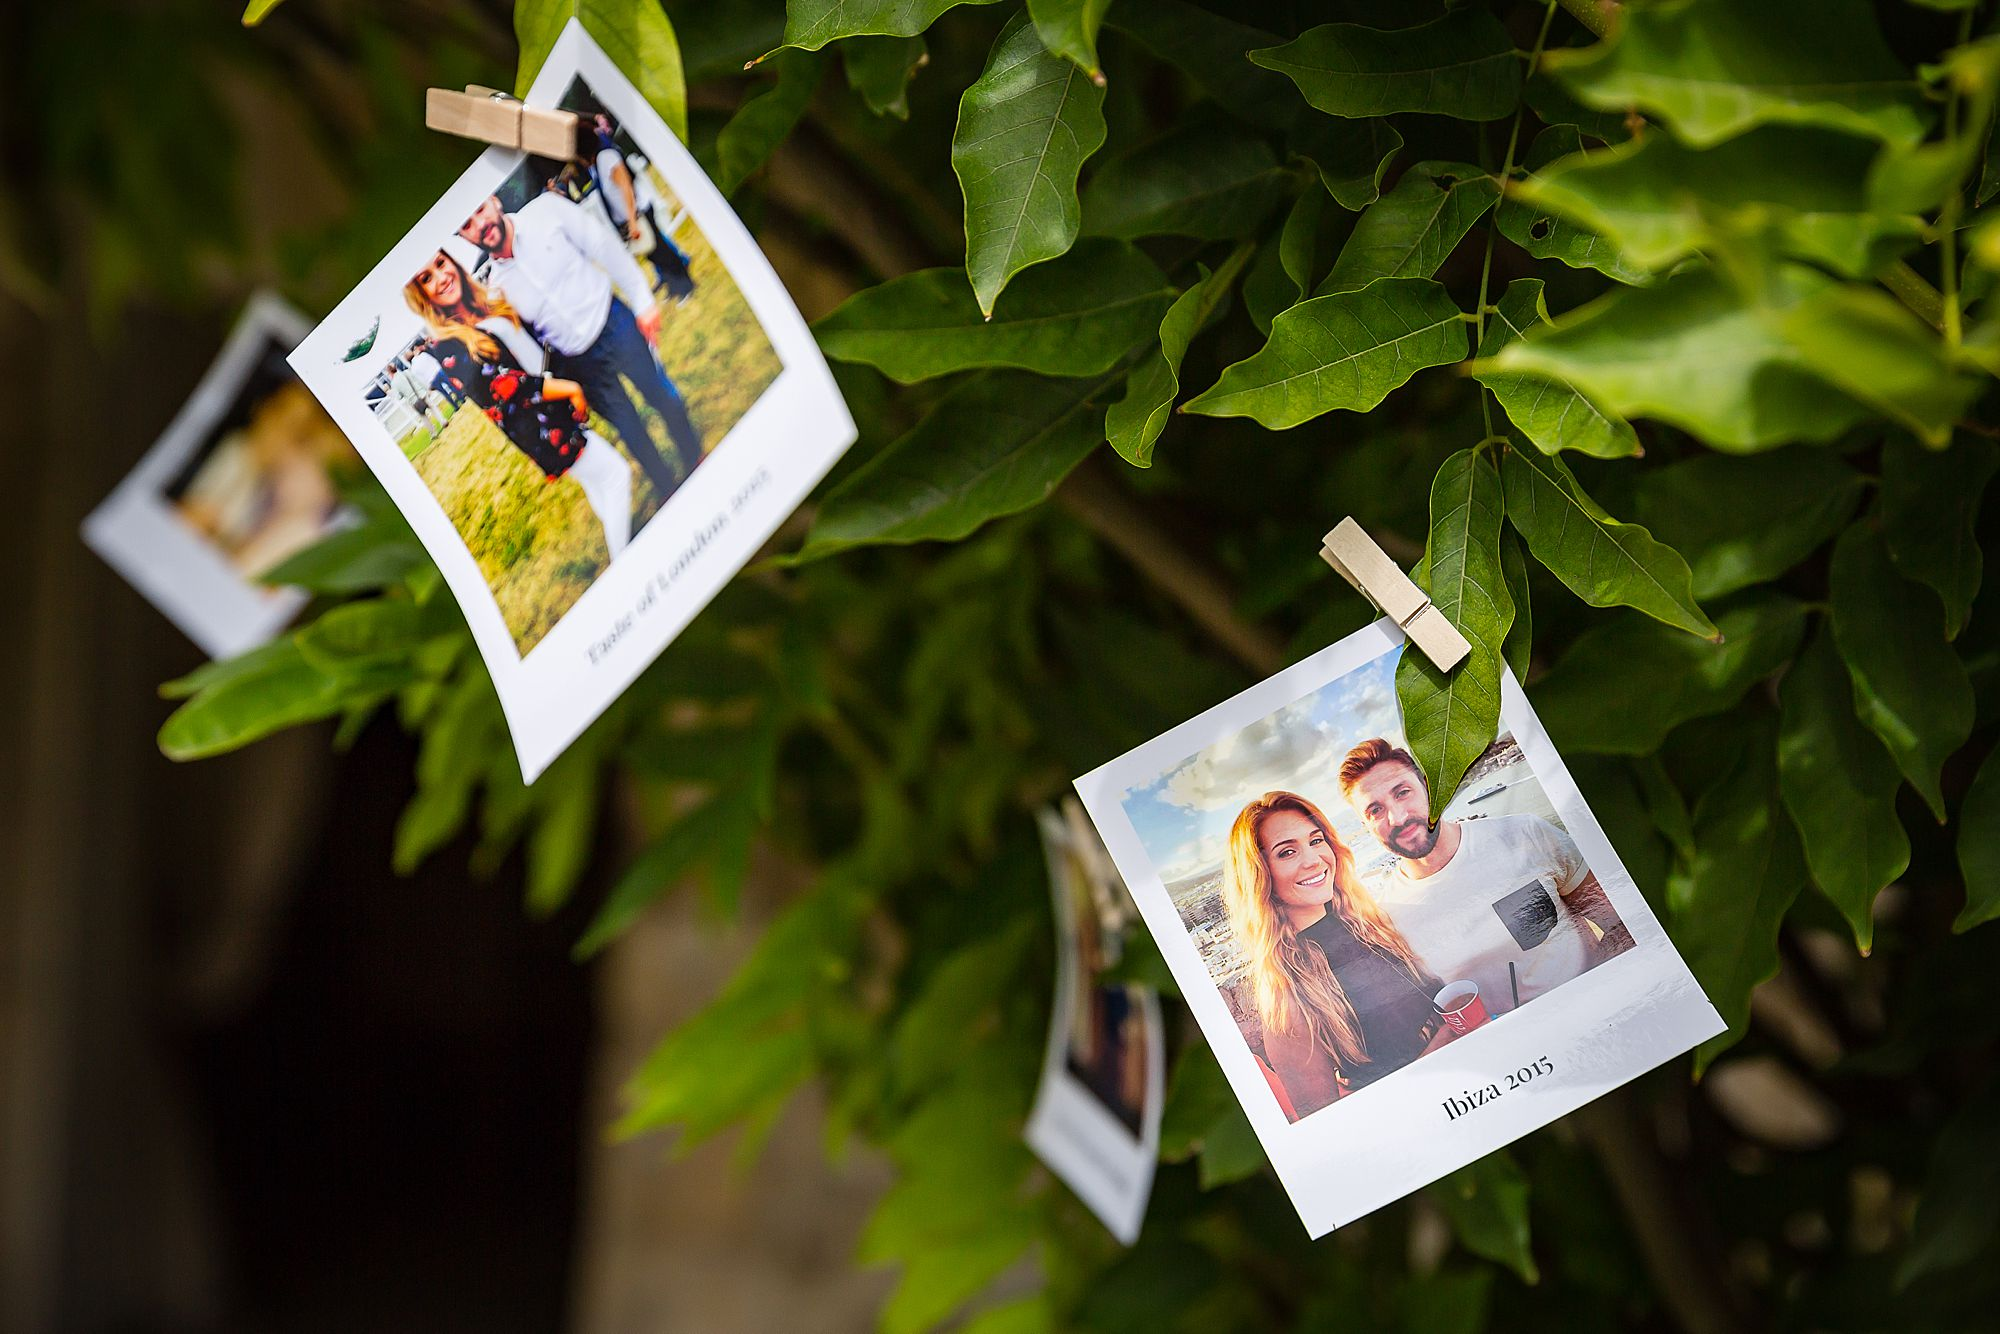 polaroid photos in trees